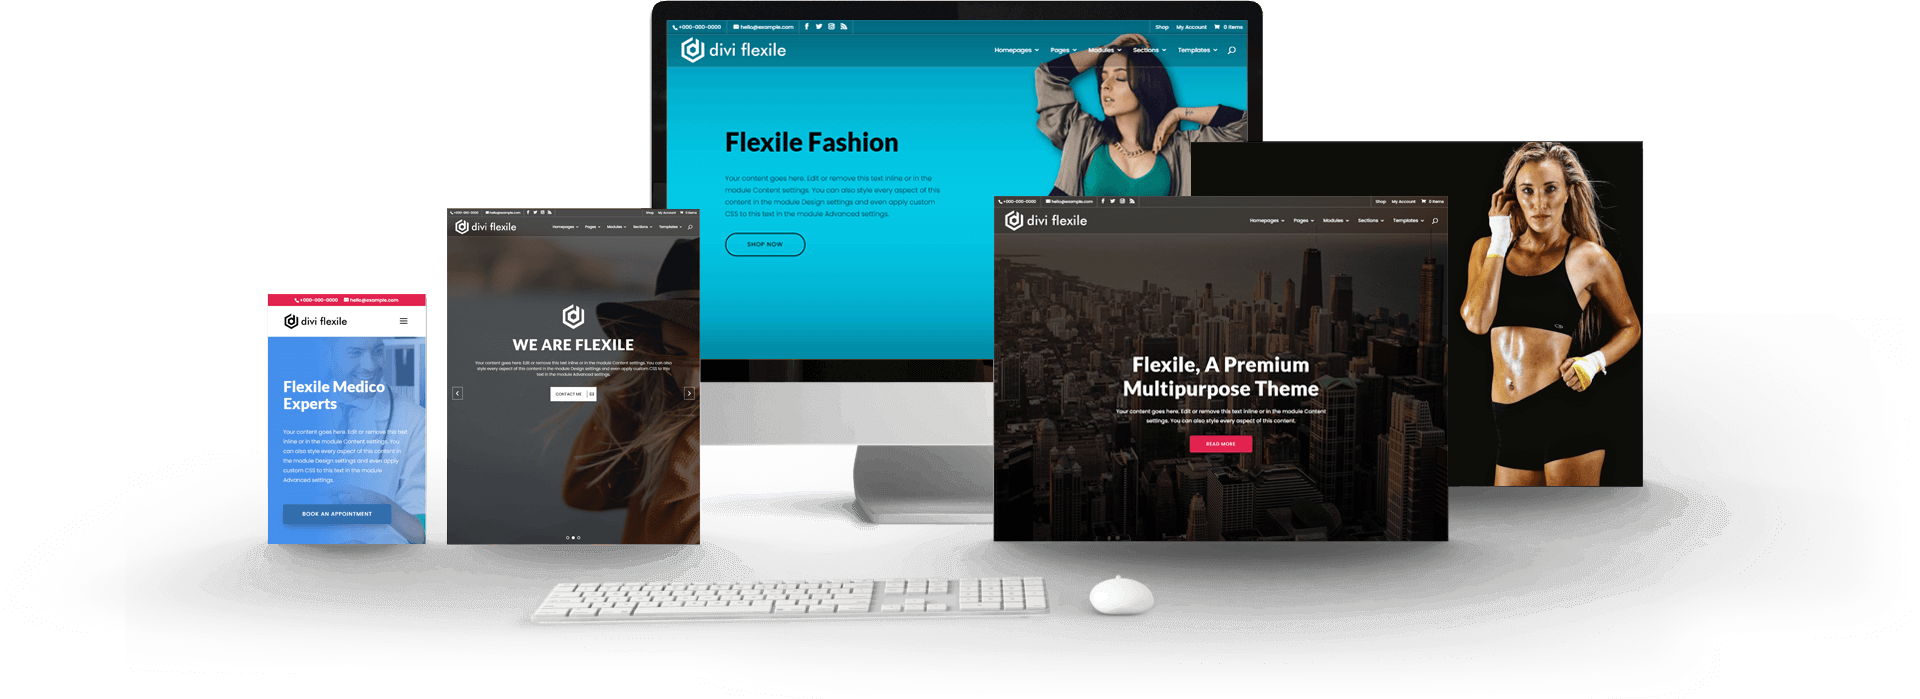 Flexile Home Page Banner